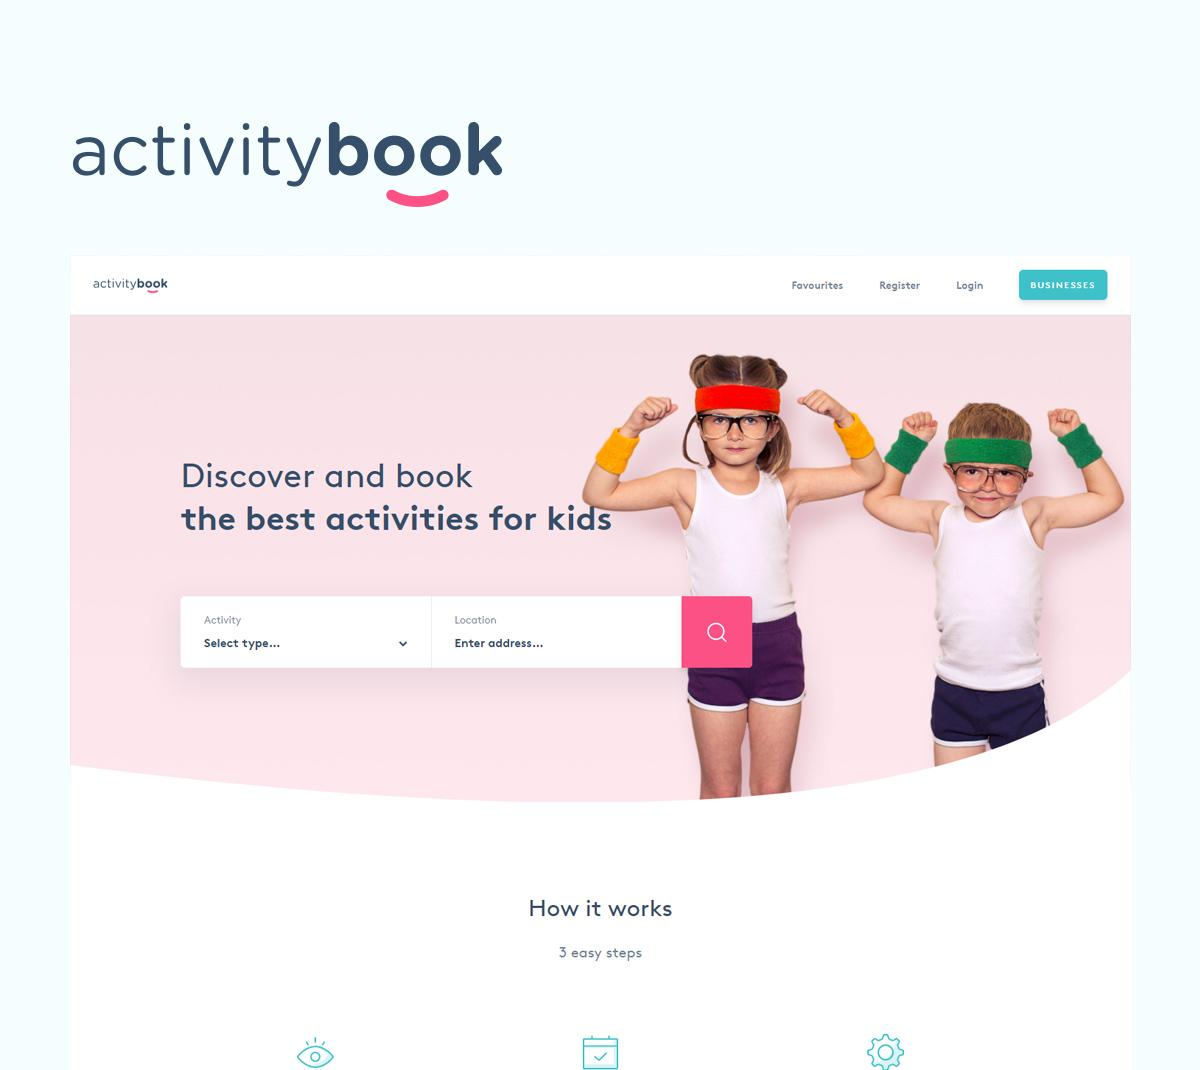 Cocolabs-Cocolabs_images_portfolio_ActivityBook-small-02